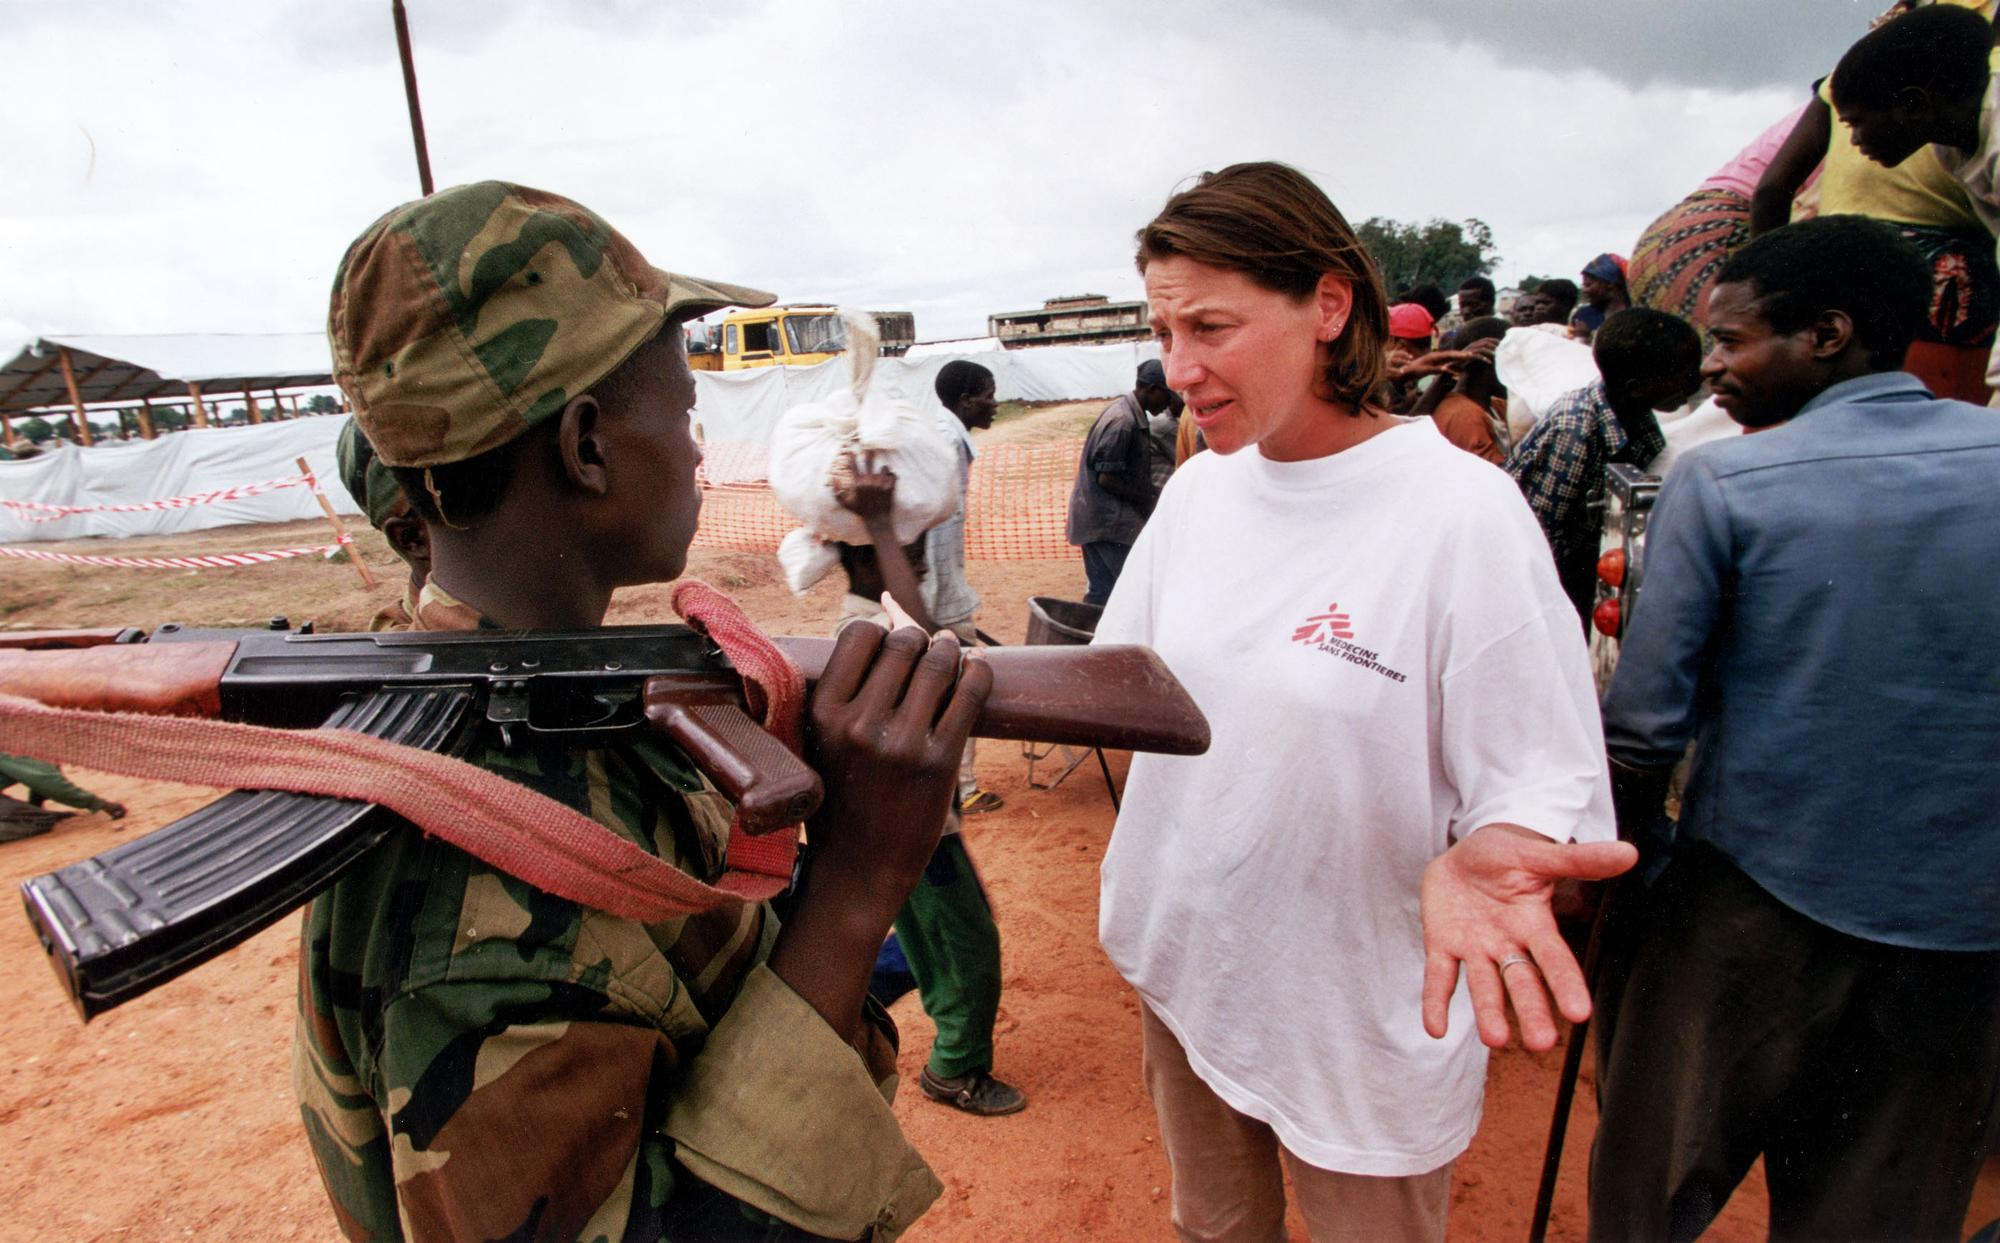 An MSF worker talks to an armed soldier in front of a line of people.